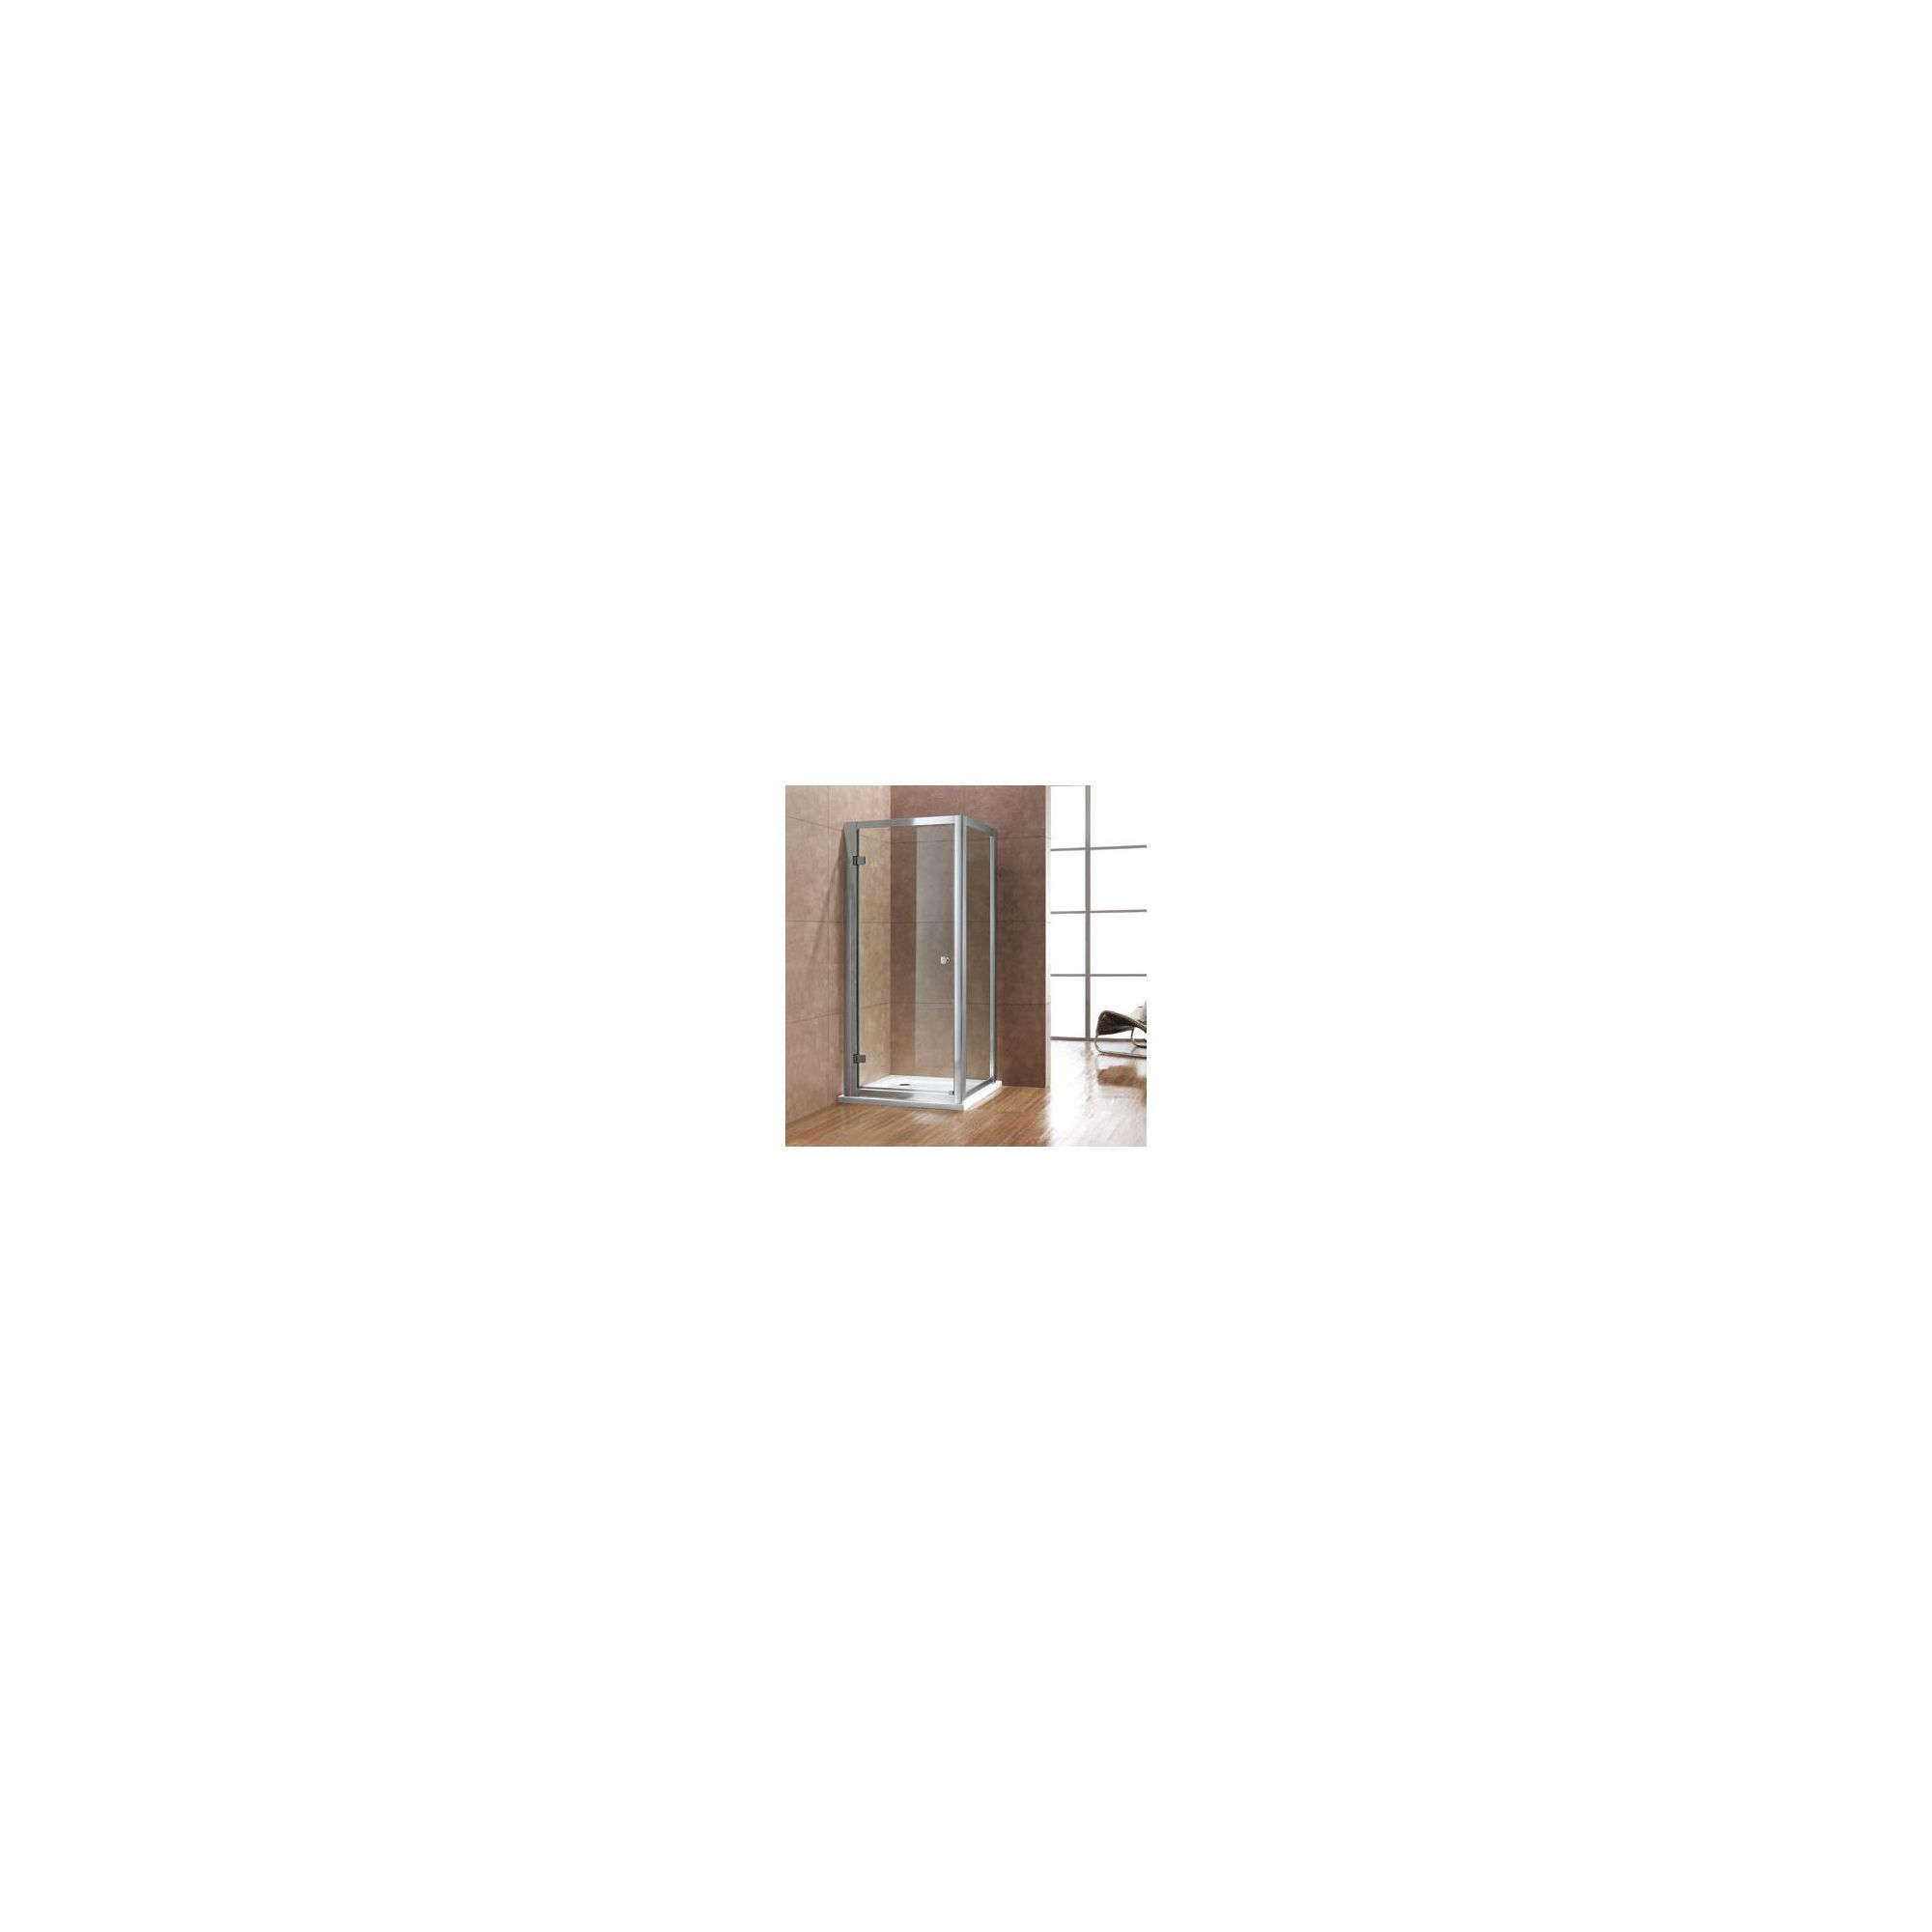 Duchy Premium Hinged Door Shower Enclosure, 1200mm x 900mm, 8mm Glass, Low Profile Tray at Tesco Direct